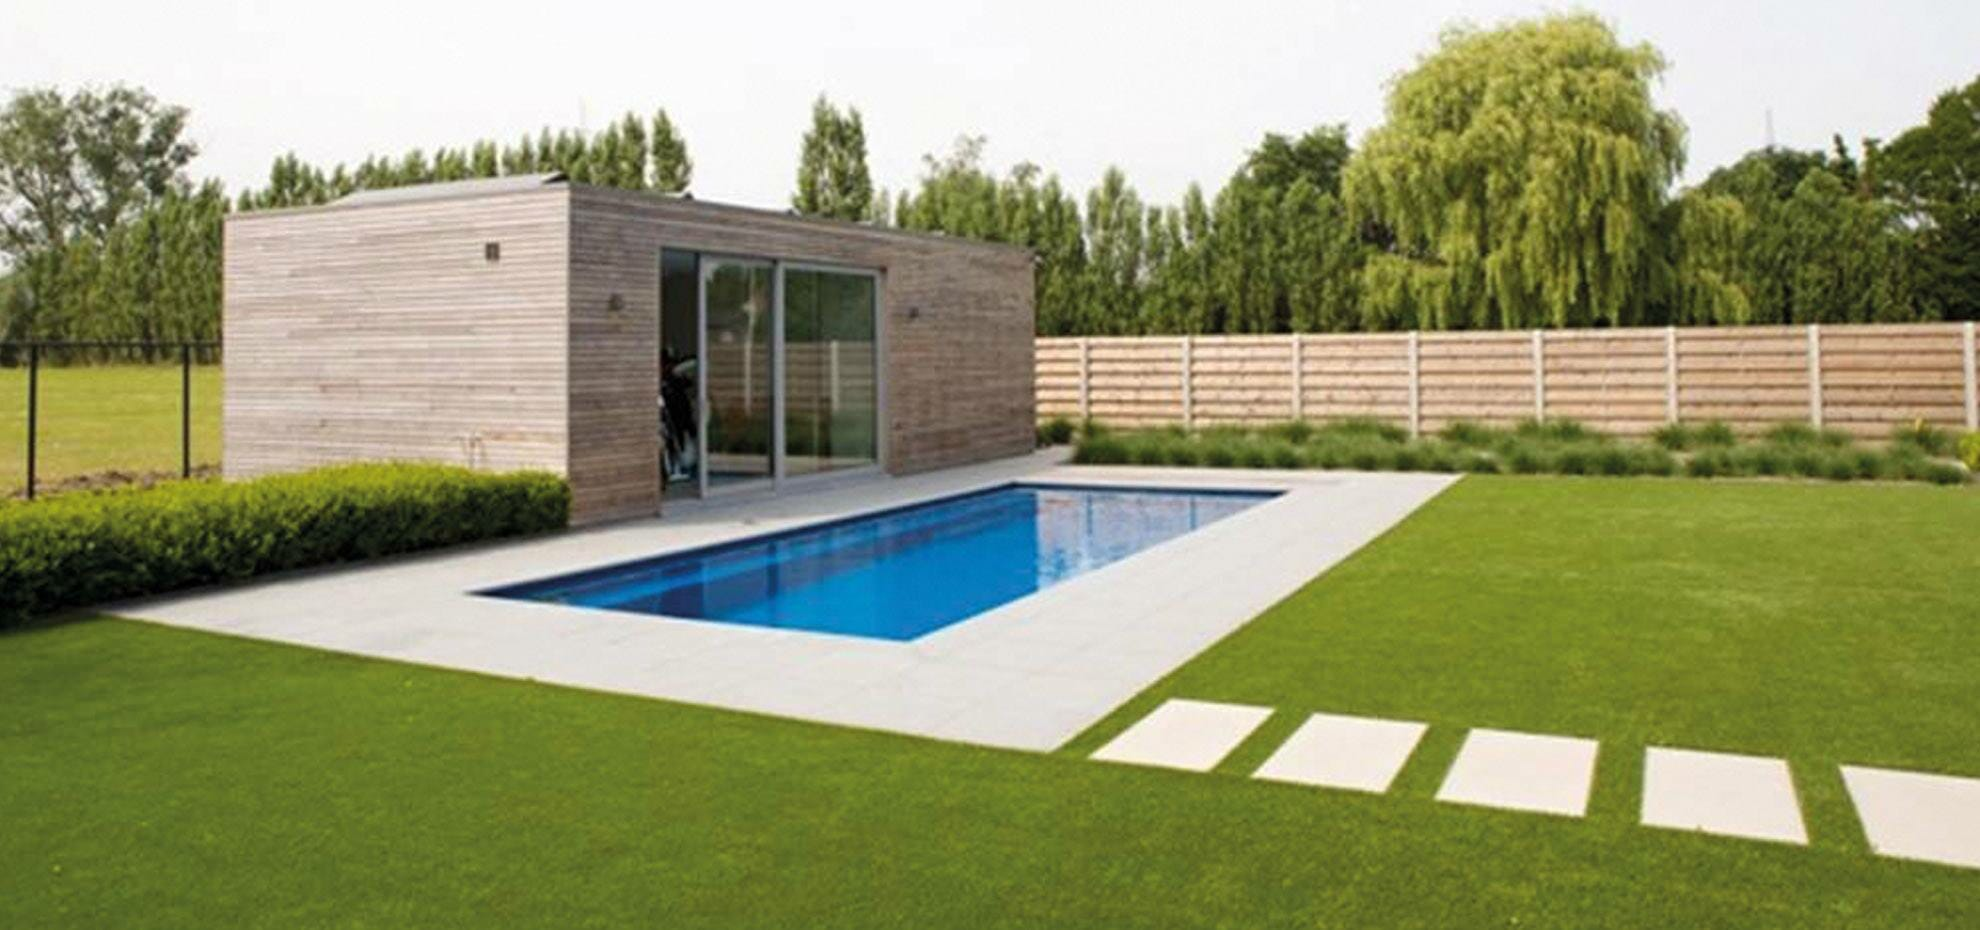 Reflection Fibreglass pool with coping and pool house by Leisure Pools